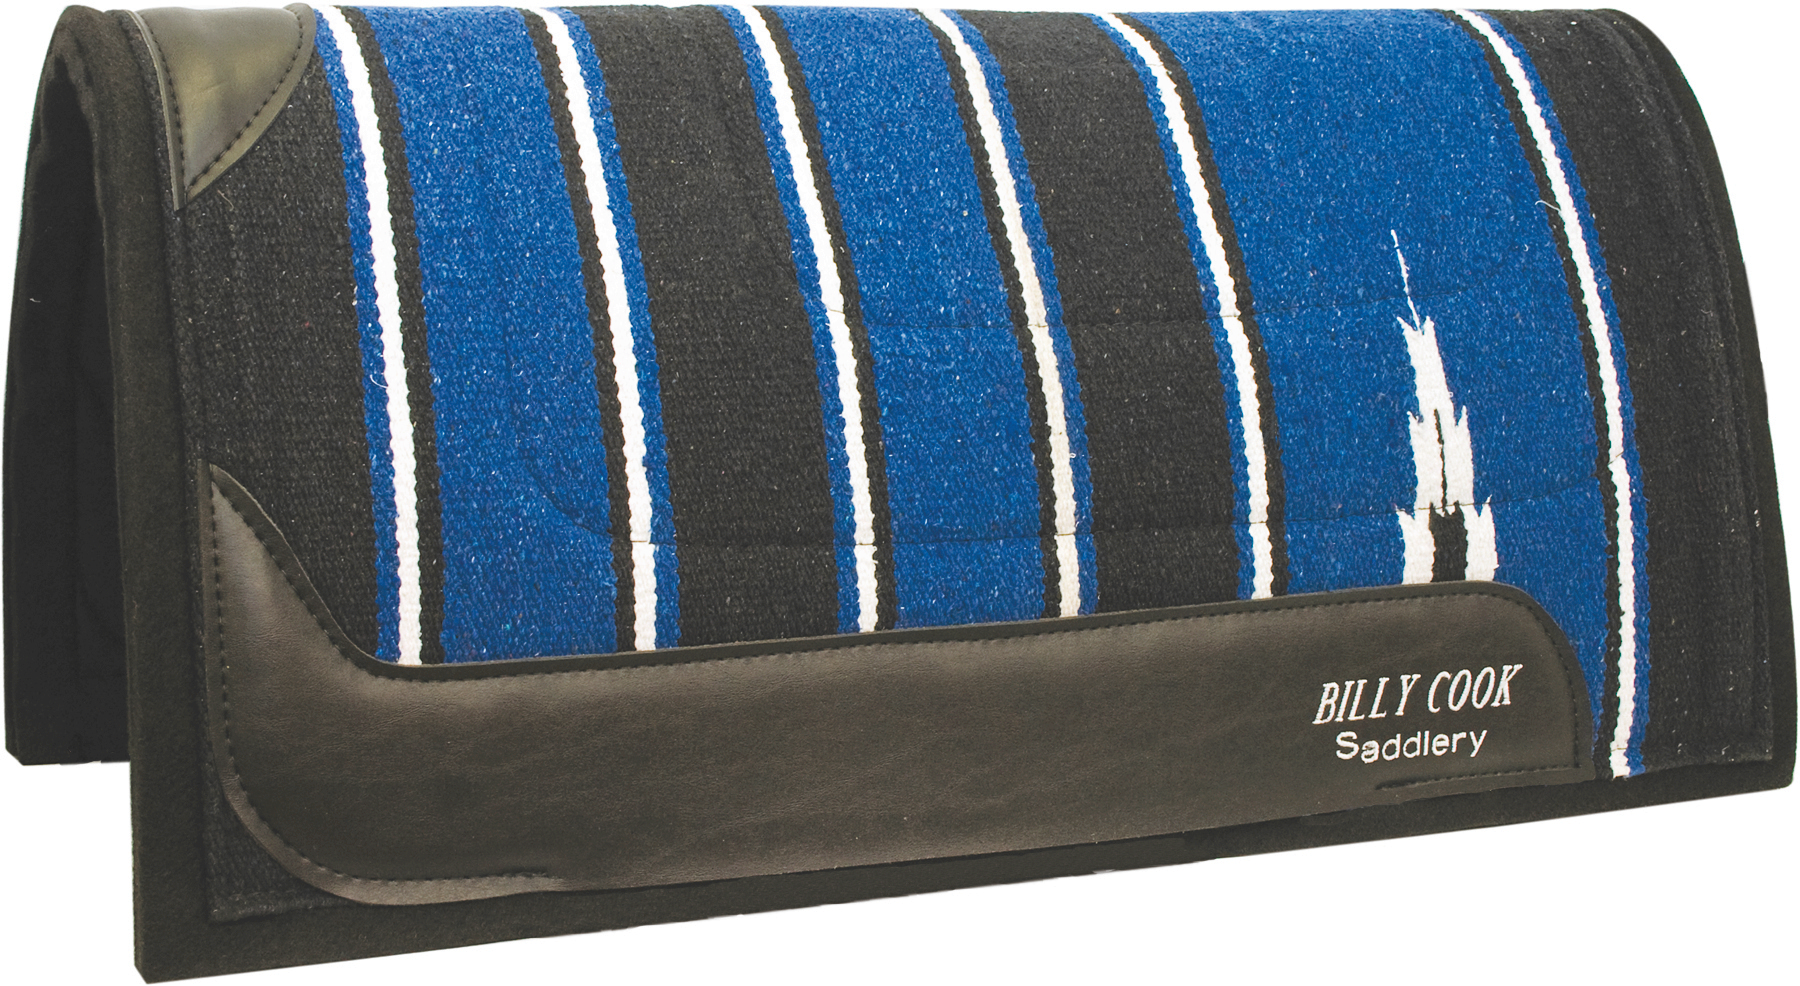 Billy Cook Saddlery Pro Felt Pad